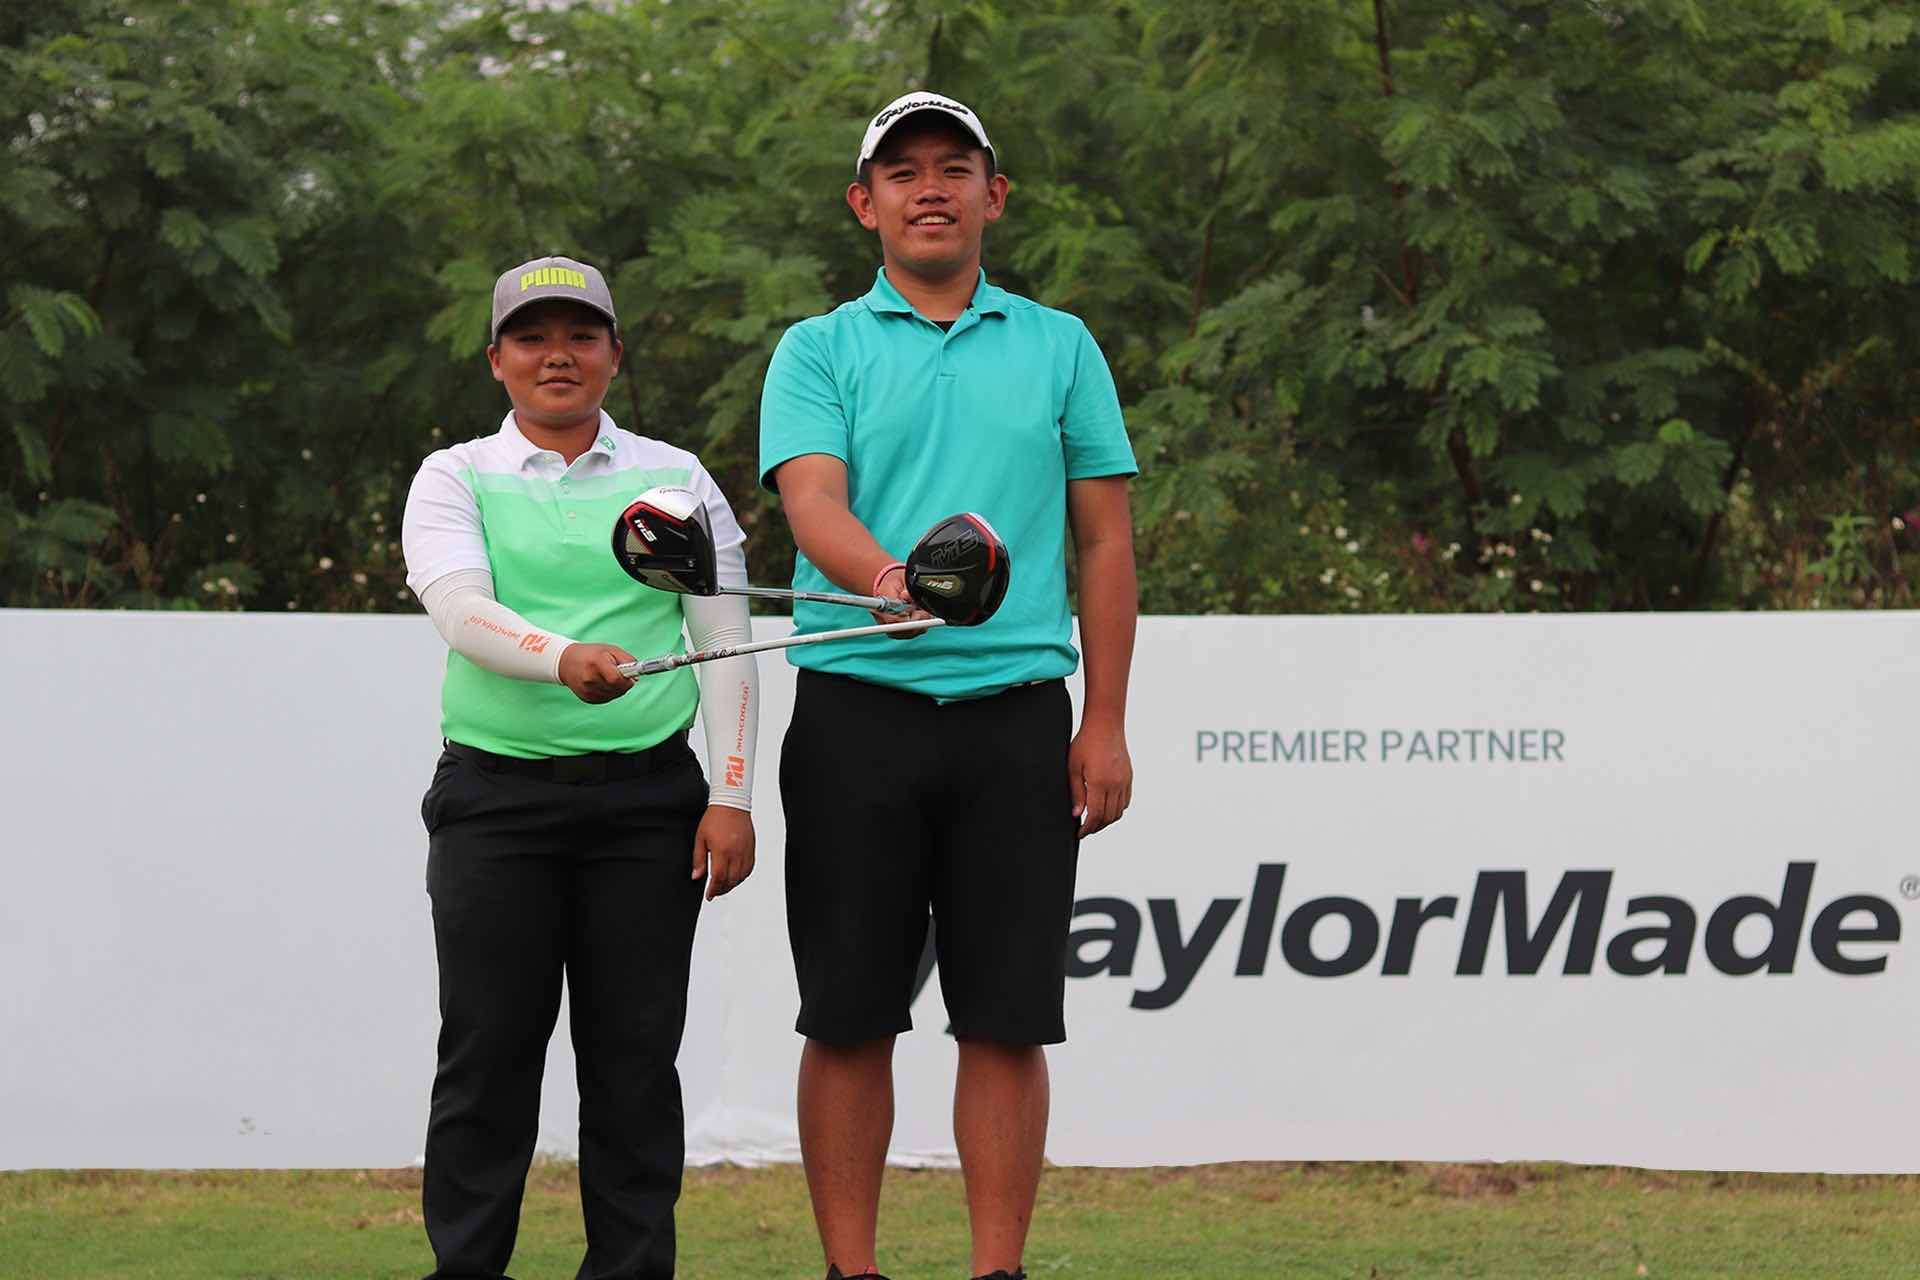 In The Driver's Seat after winning the Long Drive Contest at The Southern Junior at Zhuhai Golden Gulf Golf Club